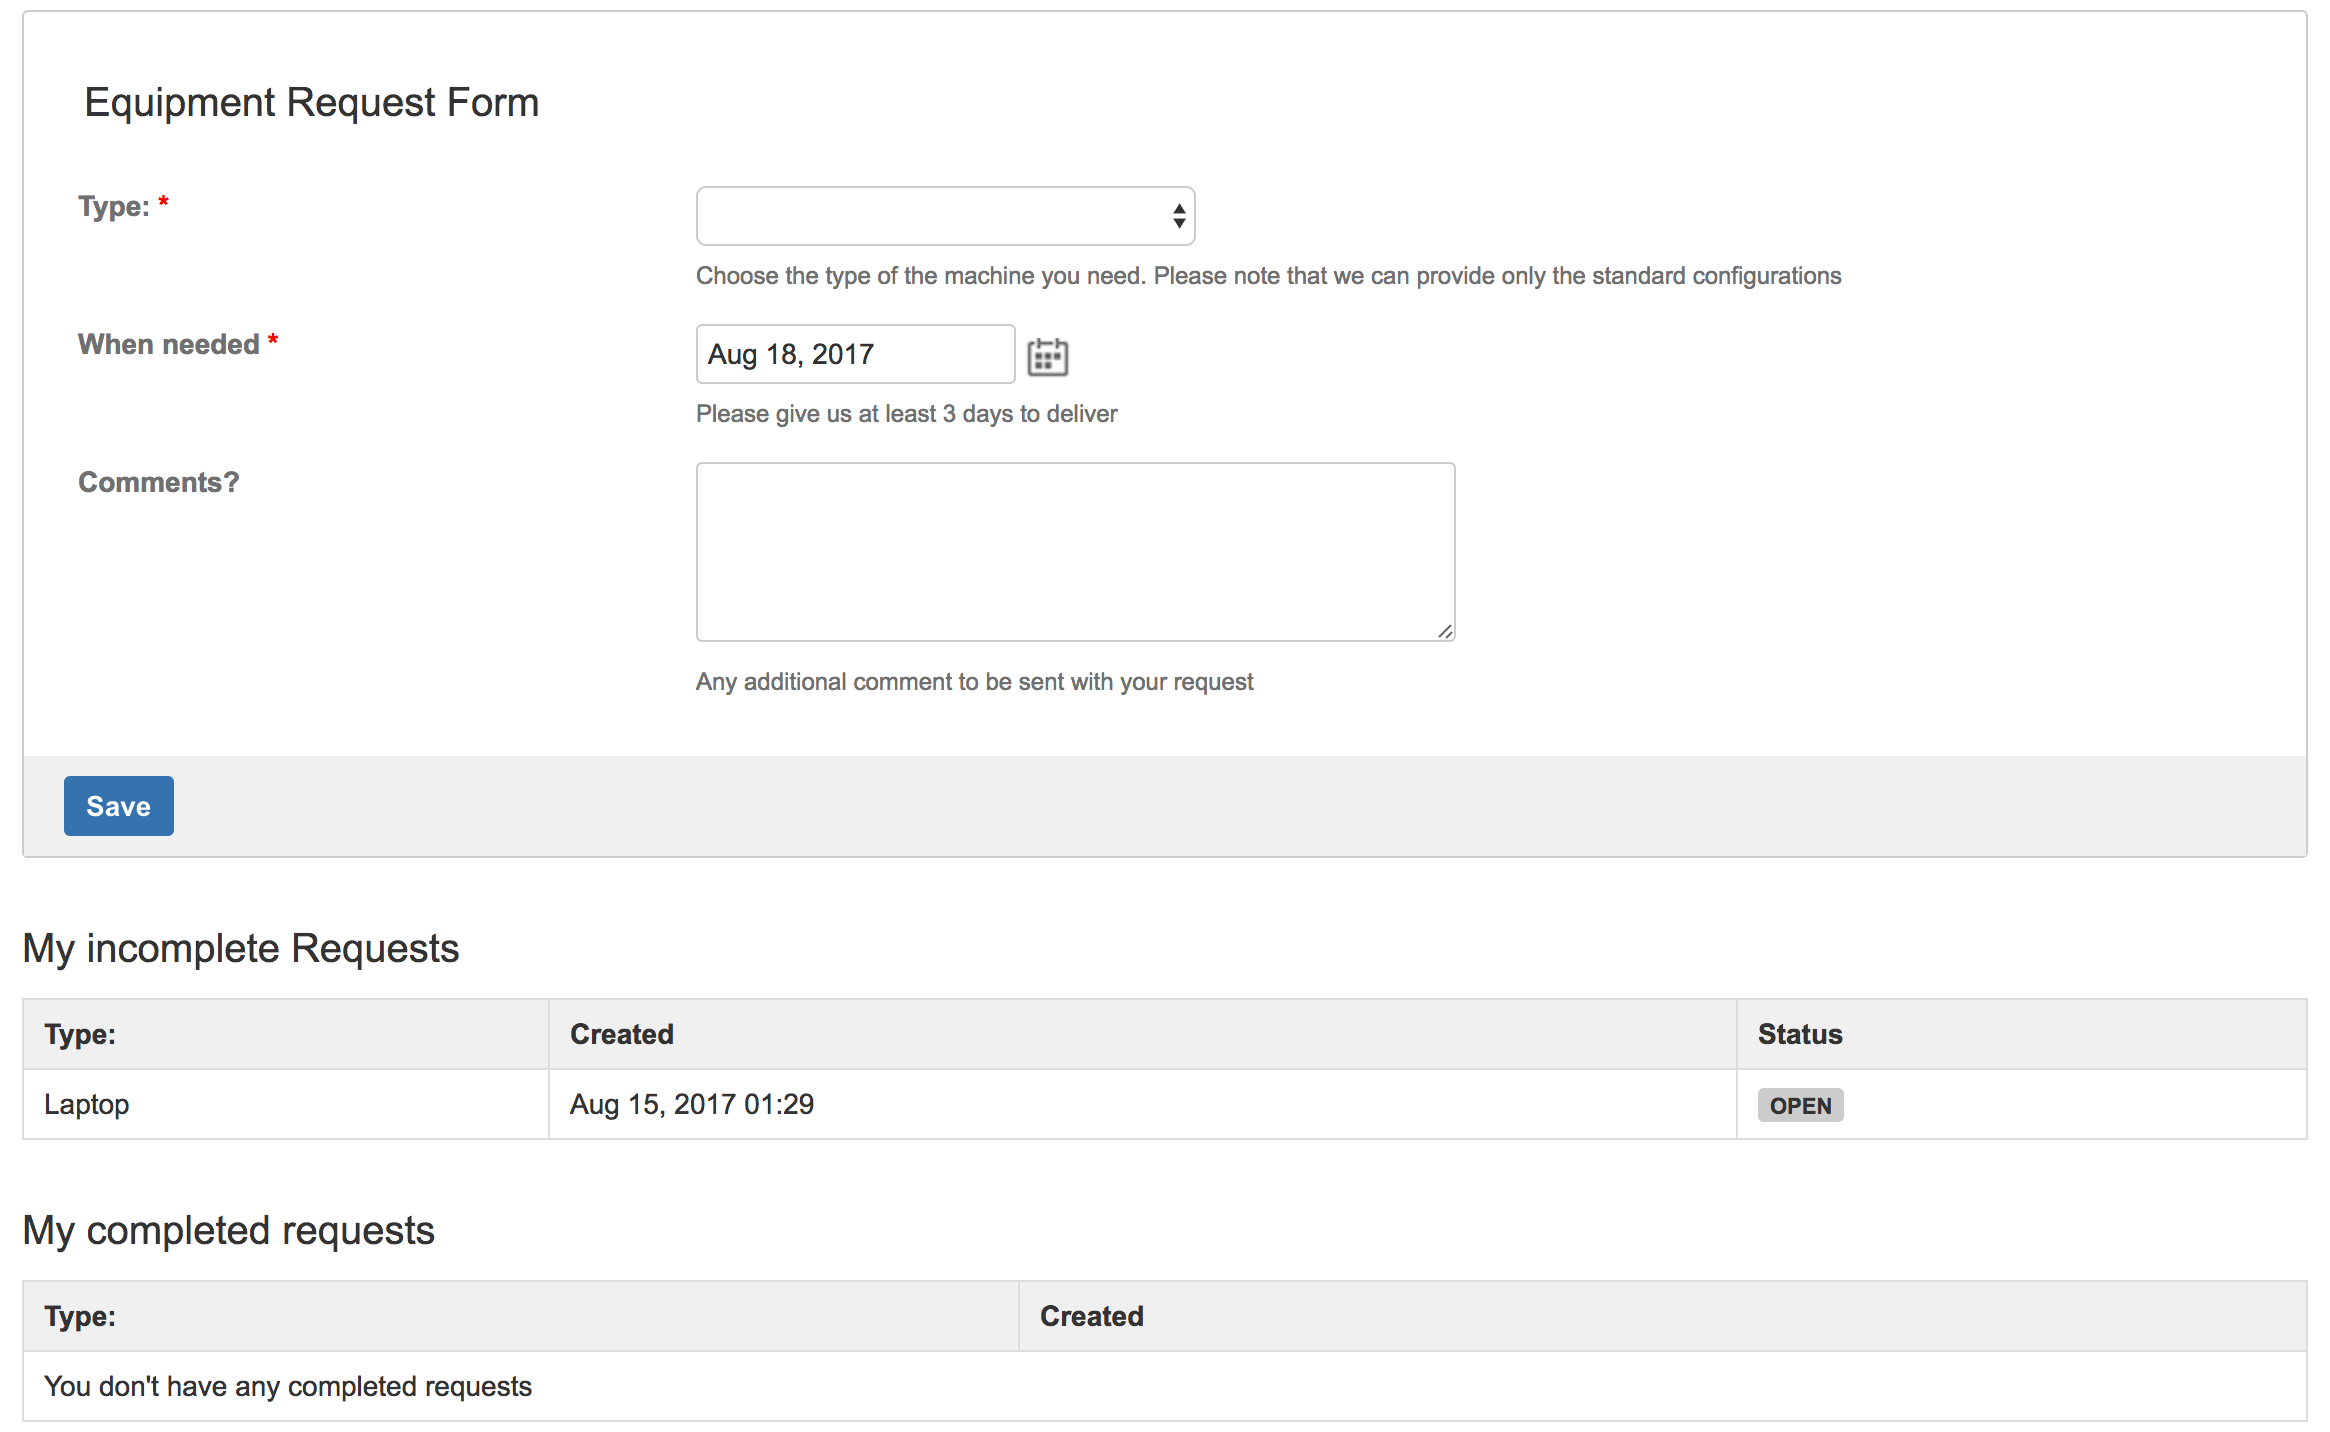 a form to quickly request a new hardware with a view to see own completed and in progress requests